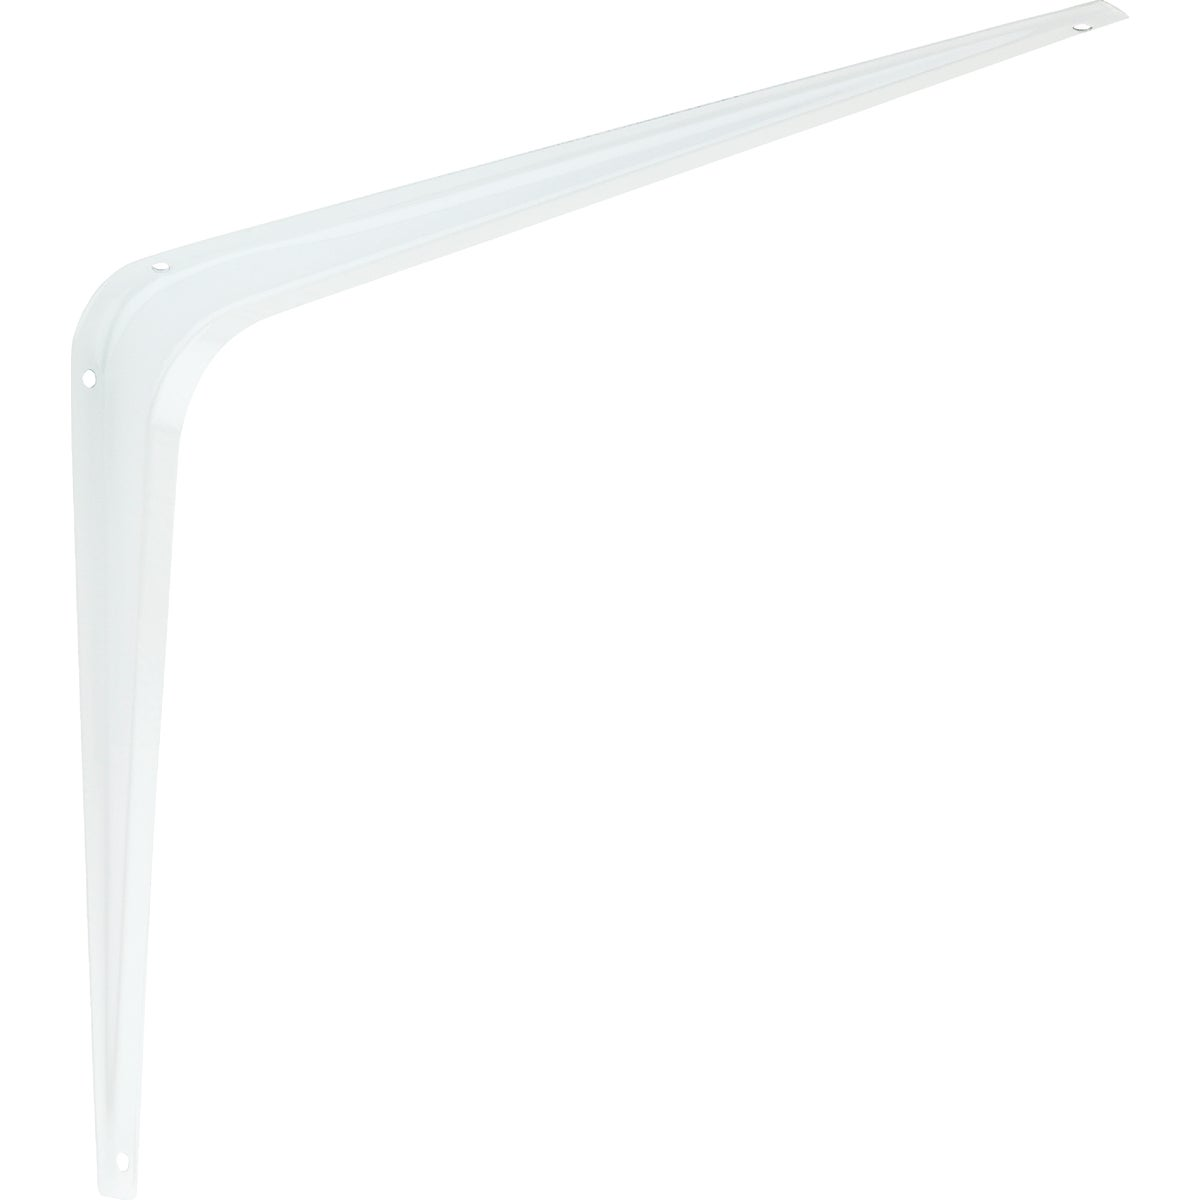 10X12 WHT SHELF BRACKET - N218958 by National Mfg Co